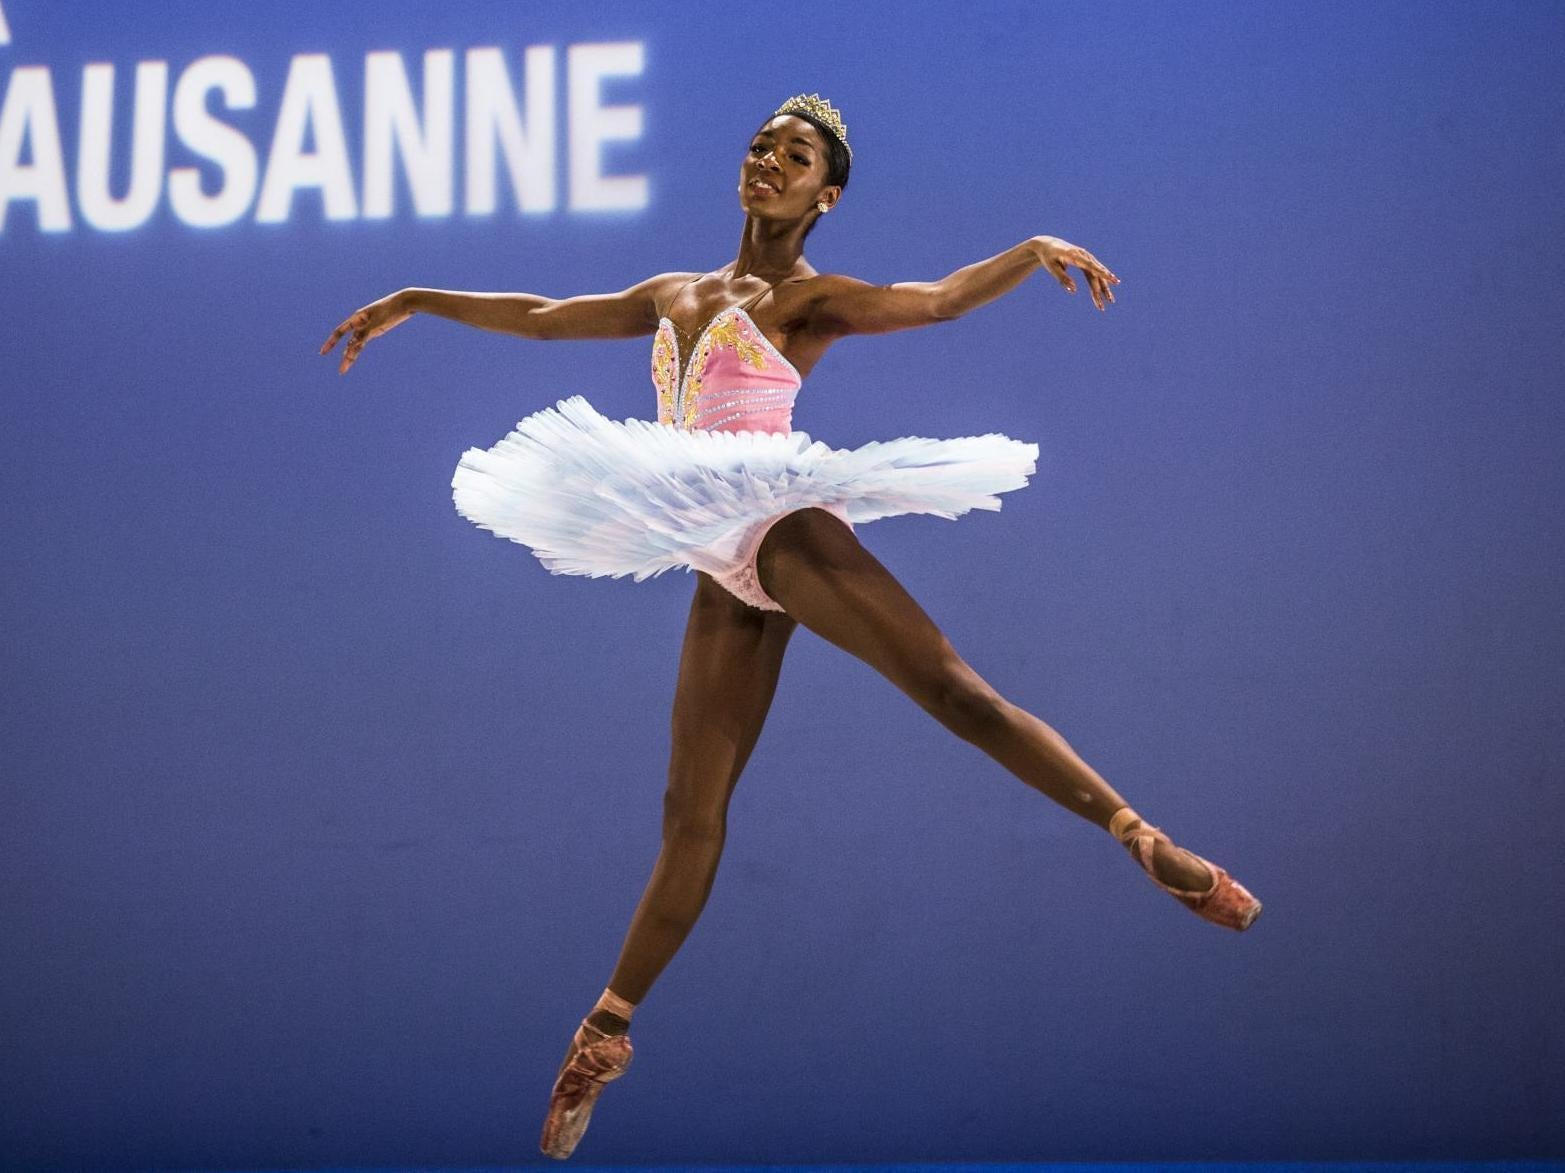 b3f8bbc52b5b Ballerina Precious Adams explains why she won't wear the traditional pink  tights: 'I'm not colourblind' | The Independent